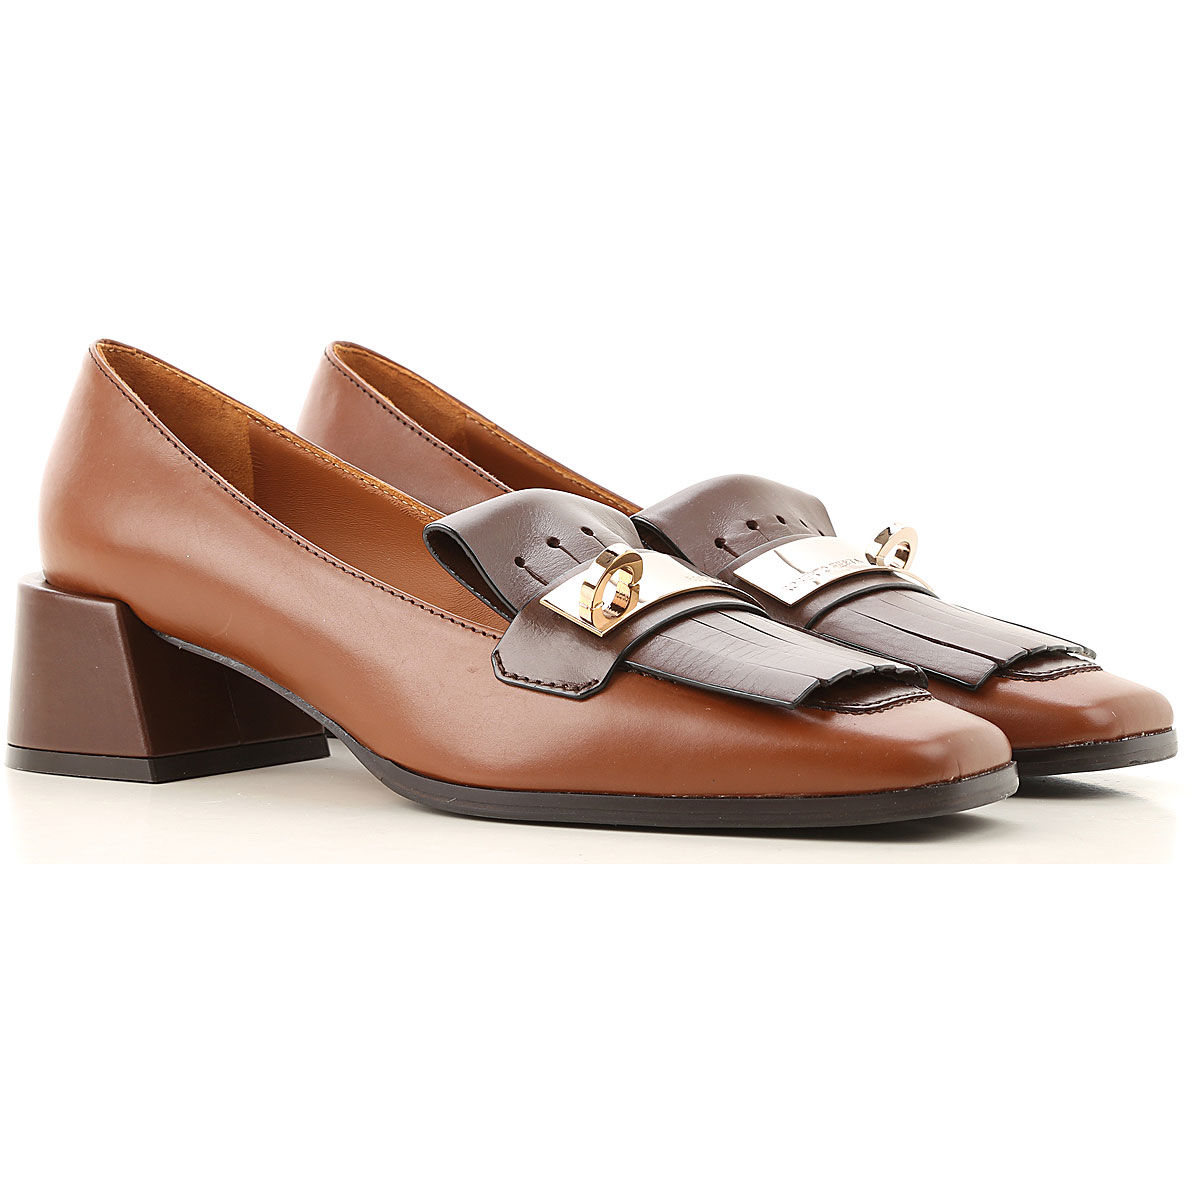 Roberto Festa Loafers for Women On Sale, Chocolate Brown, Leather, 2019, 6 8